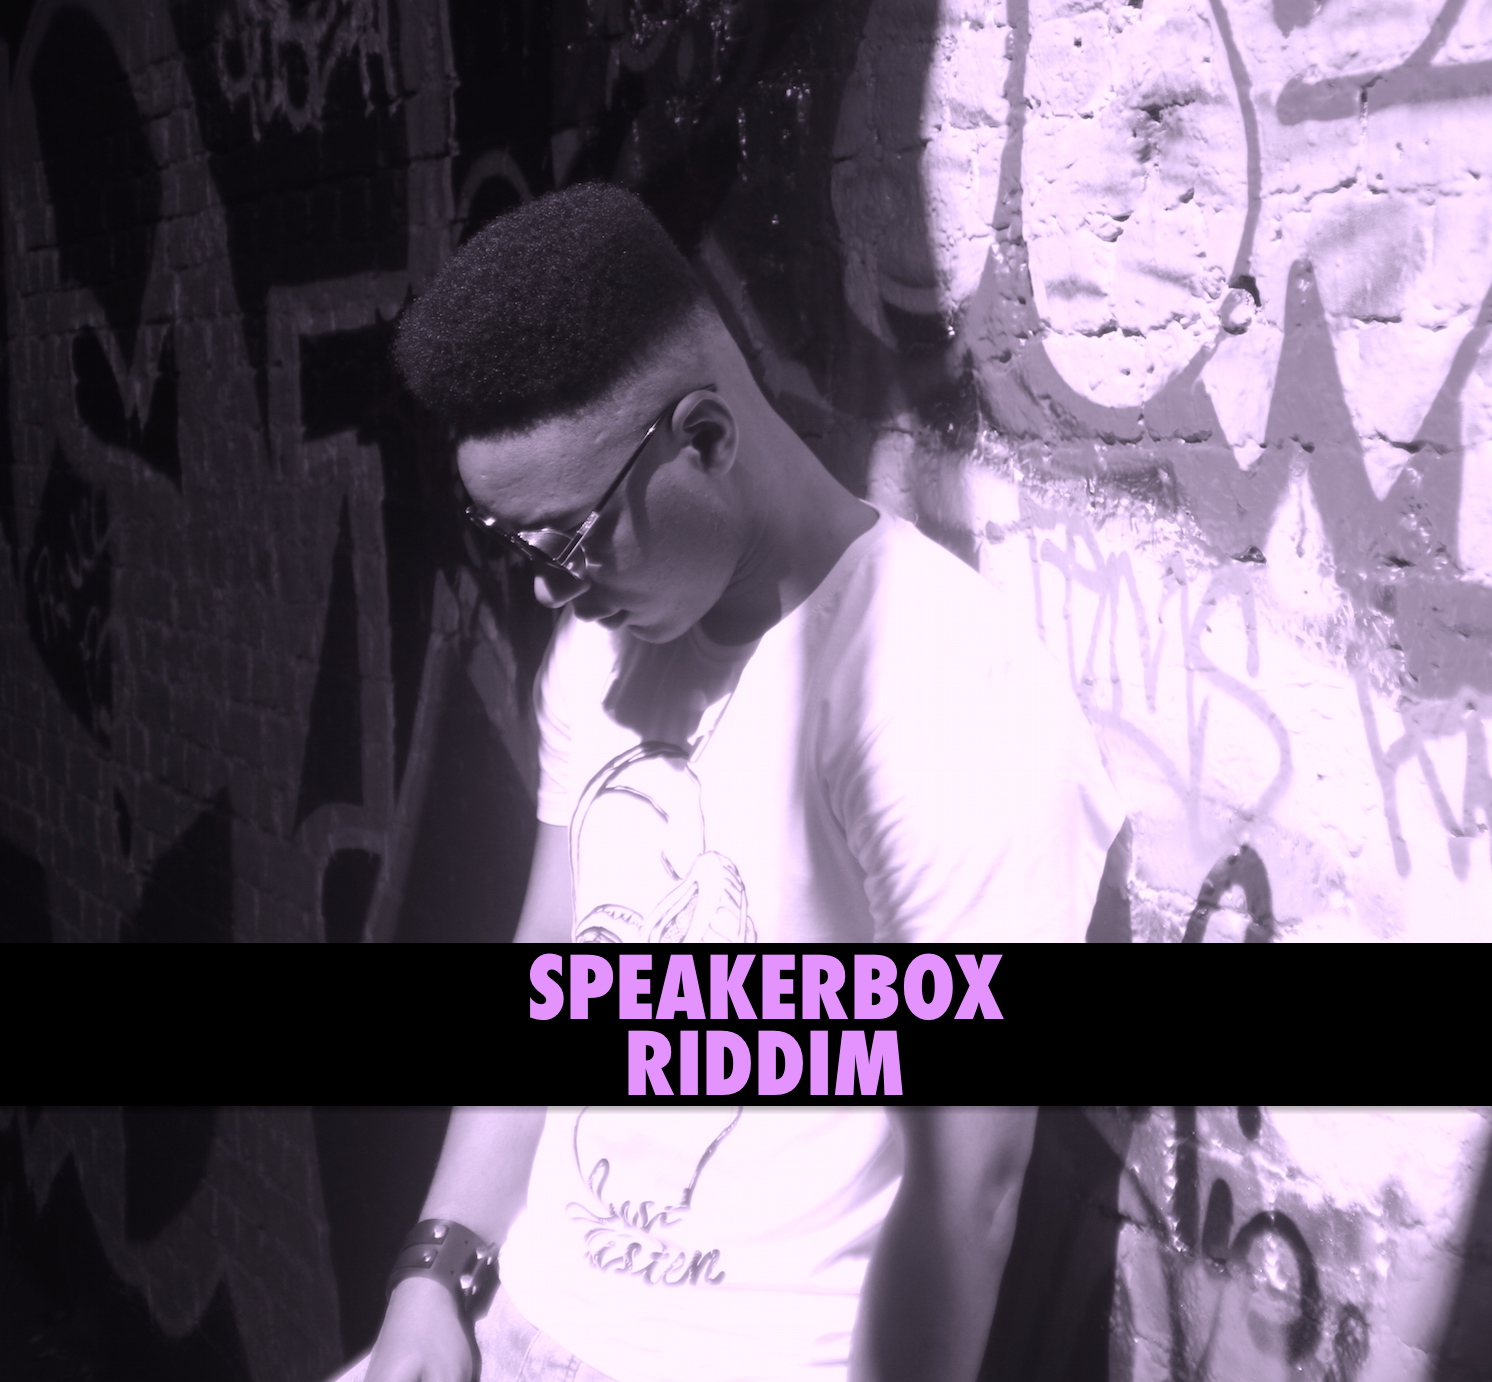 Speakerbox Riddim